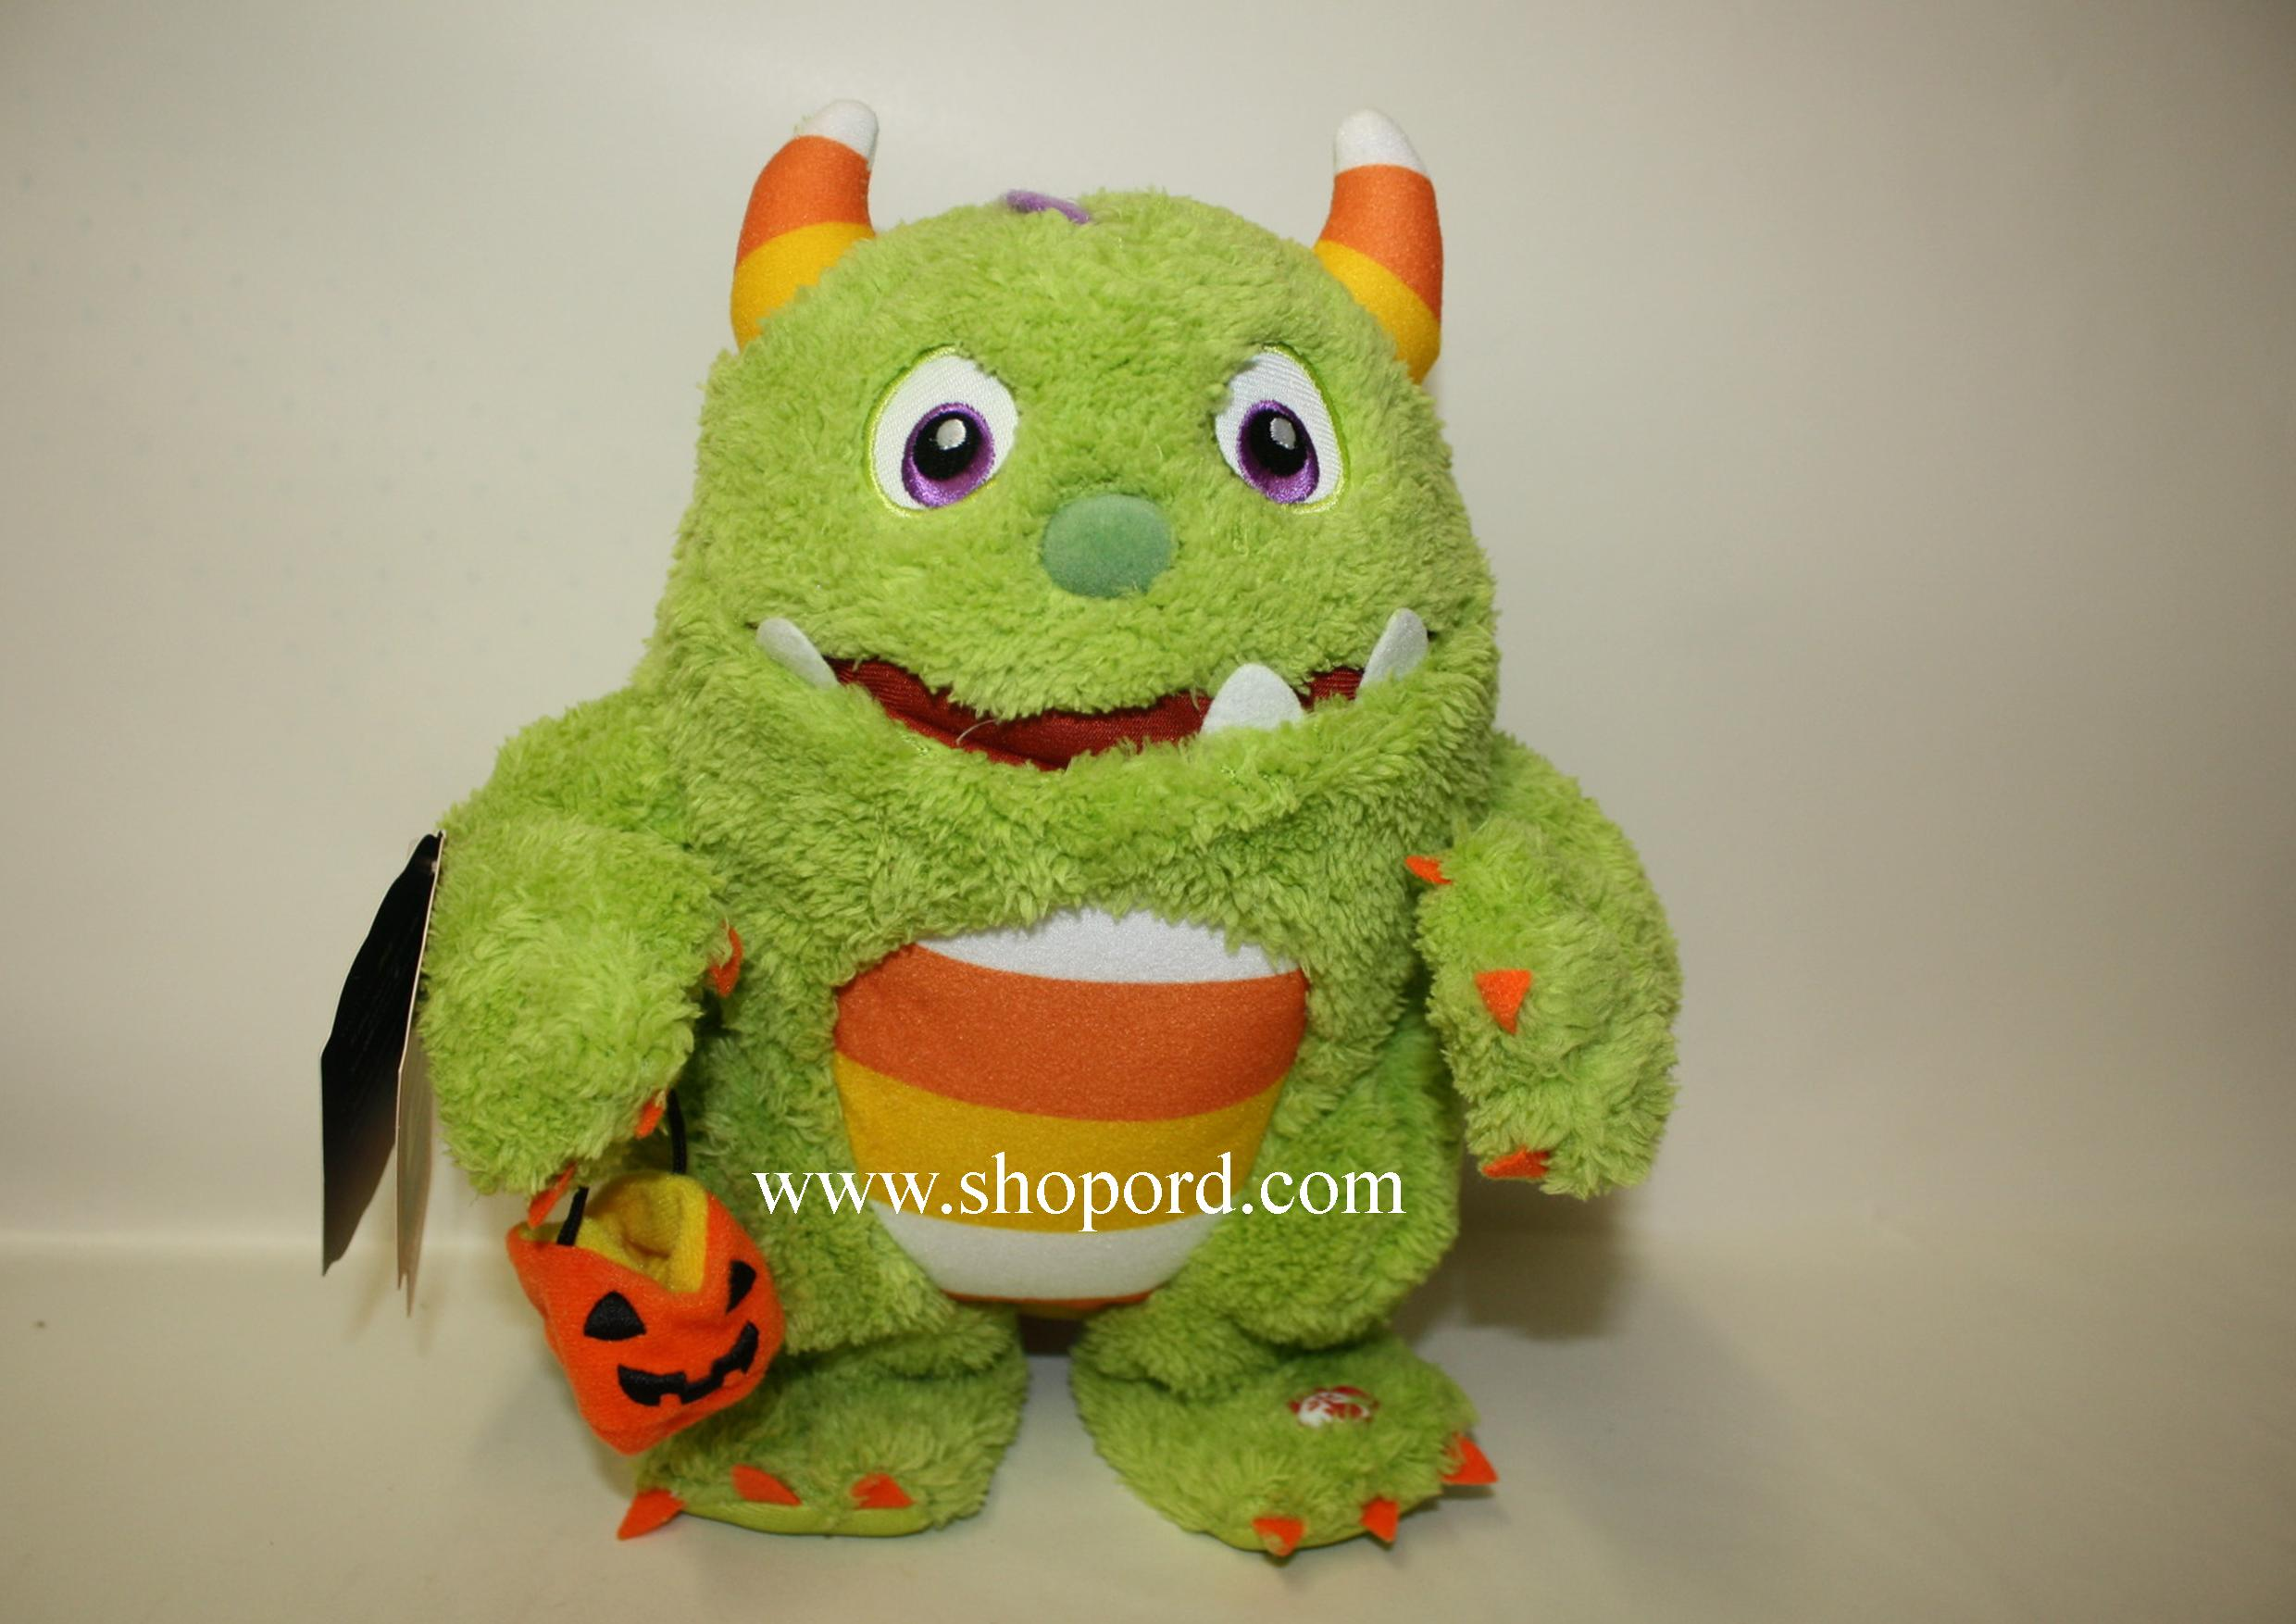 Hallmark Roary The Candy Monster Halloween Plush With Sound And Motion LPR1109